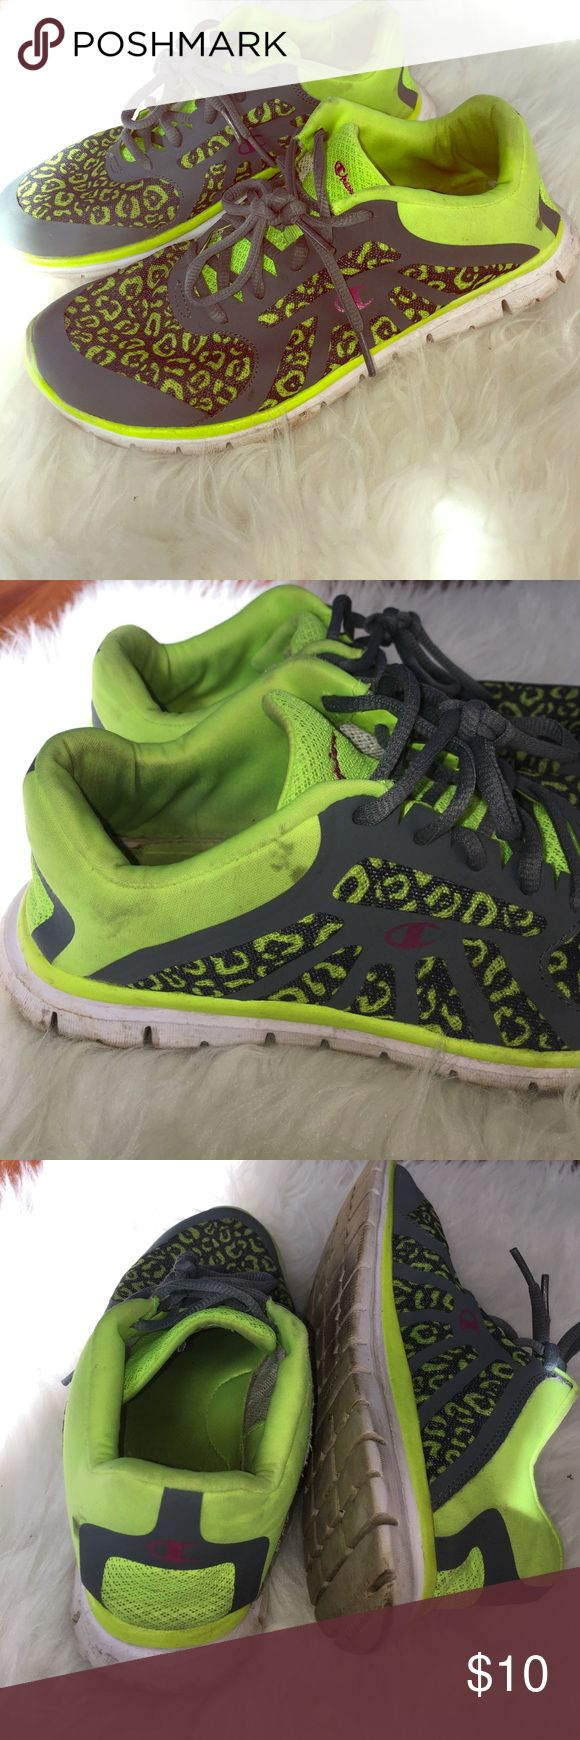 Neon Cheetah Print Gym Sneakers Sz 8 champion Sneakers! Perfect for a long day at work, jogging or the gym. Super comfy, light weight! Nice bright yellow/green color and grey. Cheetah print. Please look at photos for condition- they do have dirt around the top. Champion Shoes Sneakers